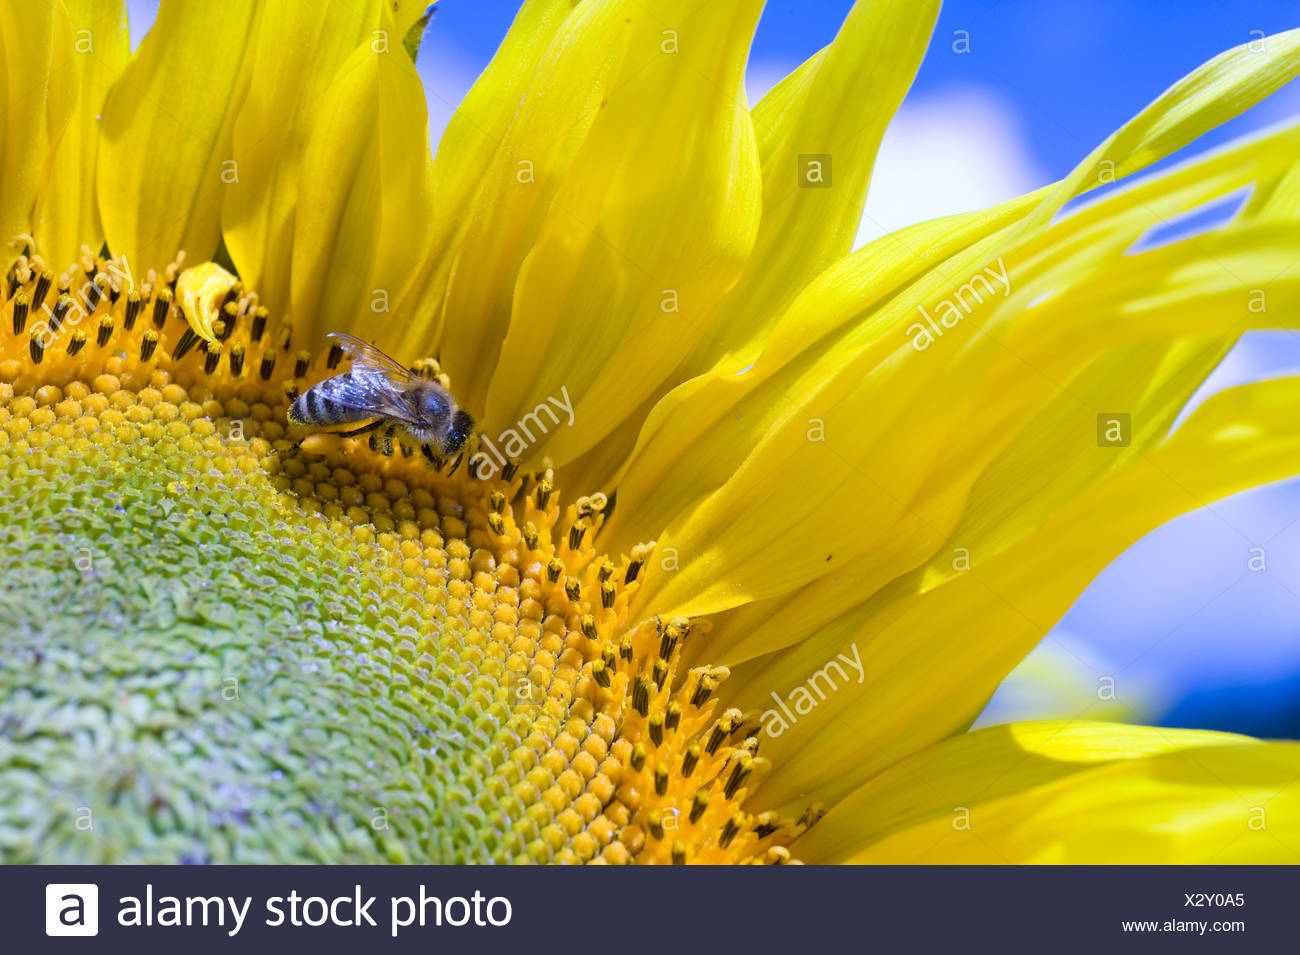 A sunflower - Stock Image